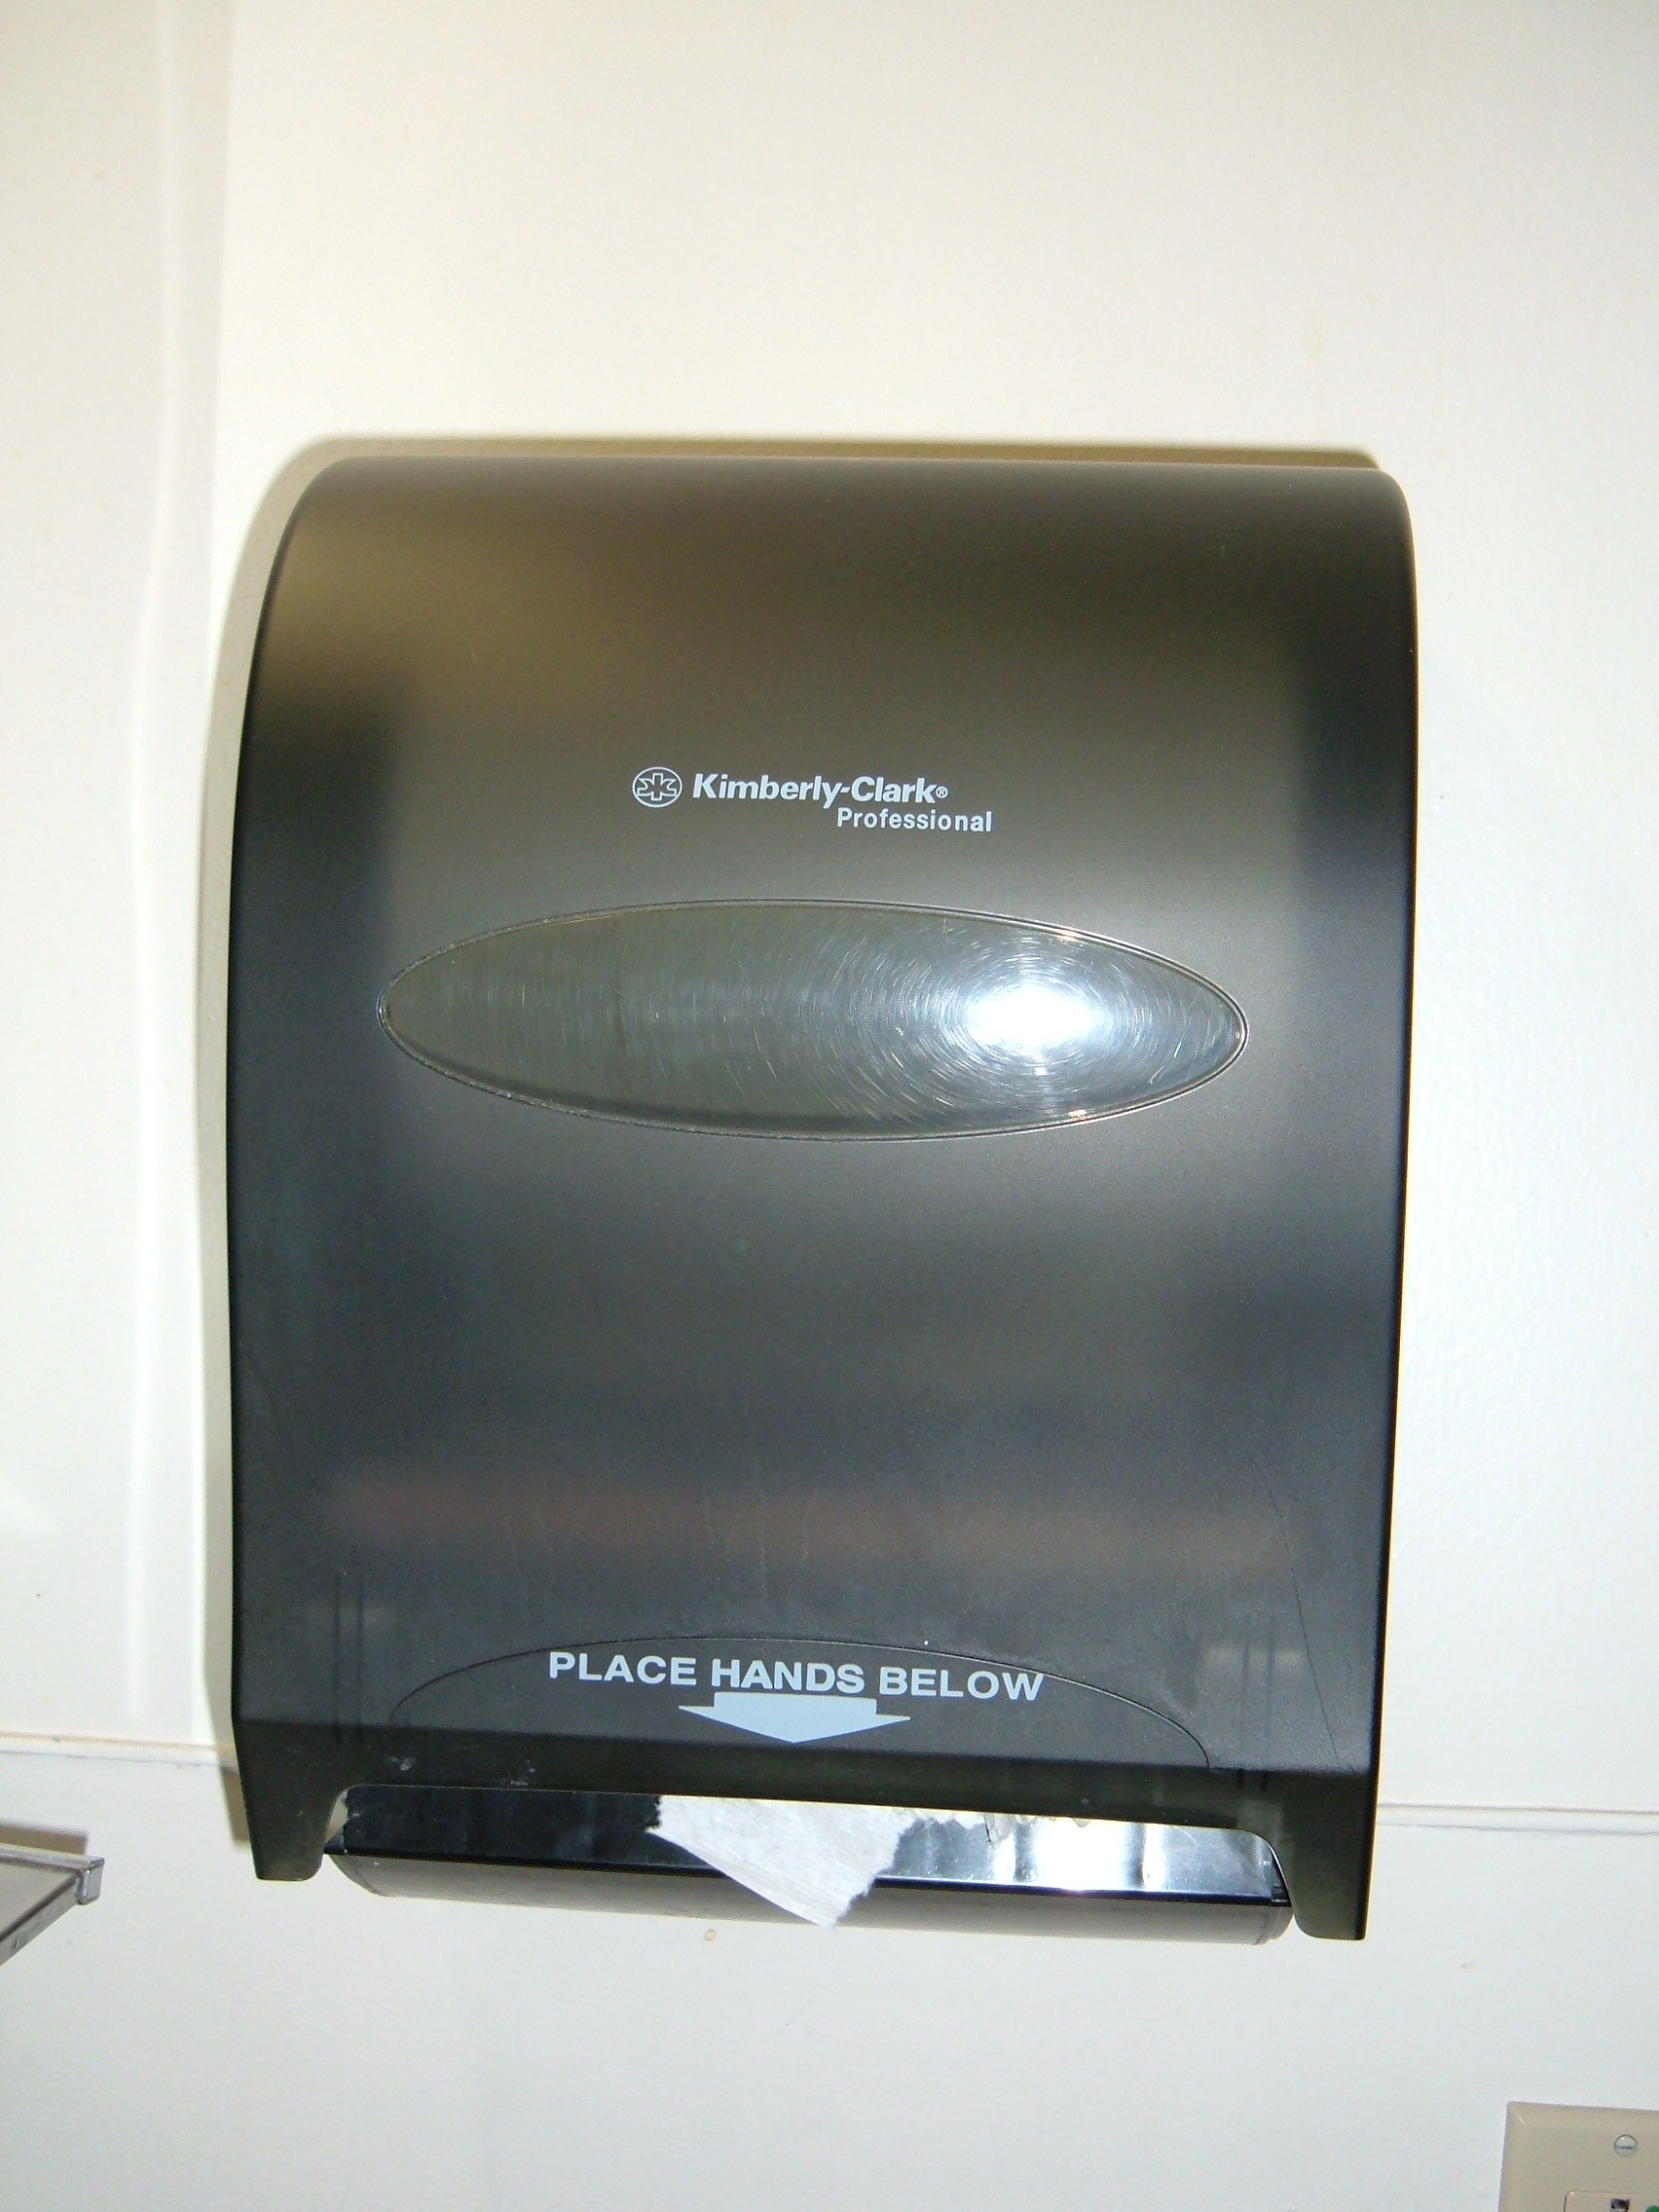 File:Kimberly Clark Automatic Paper Towel Dispenser.JPG